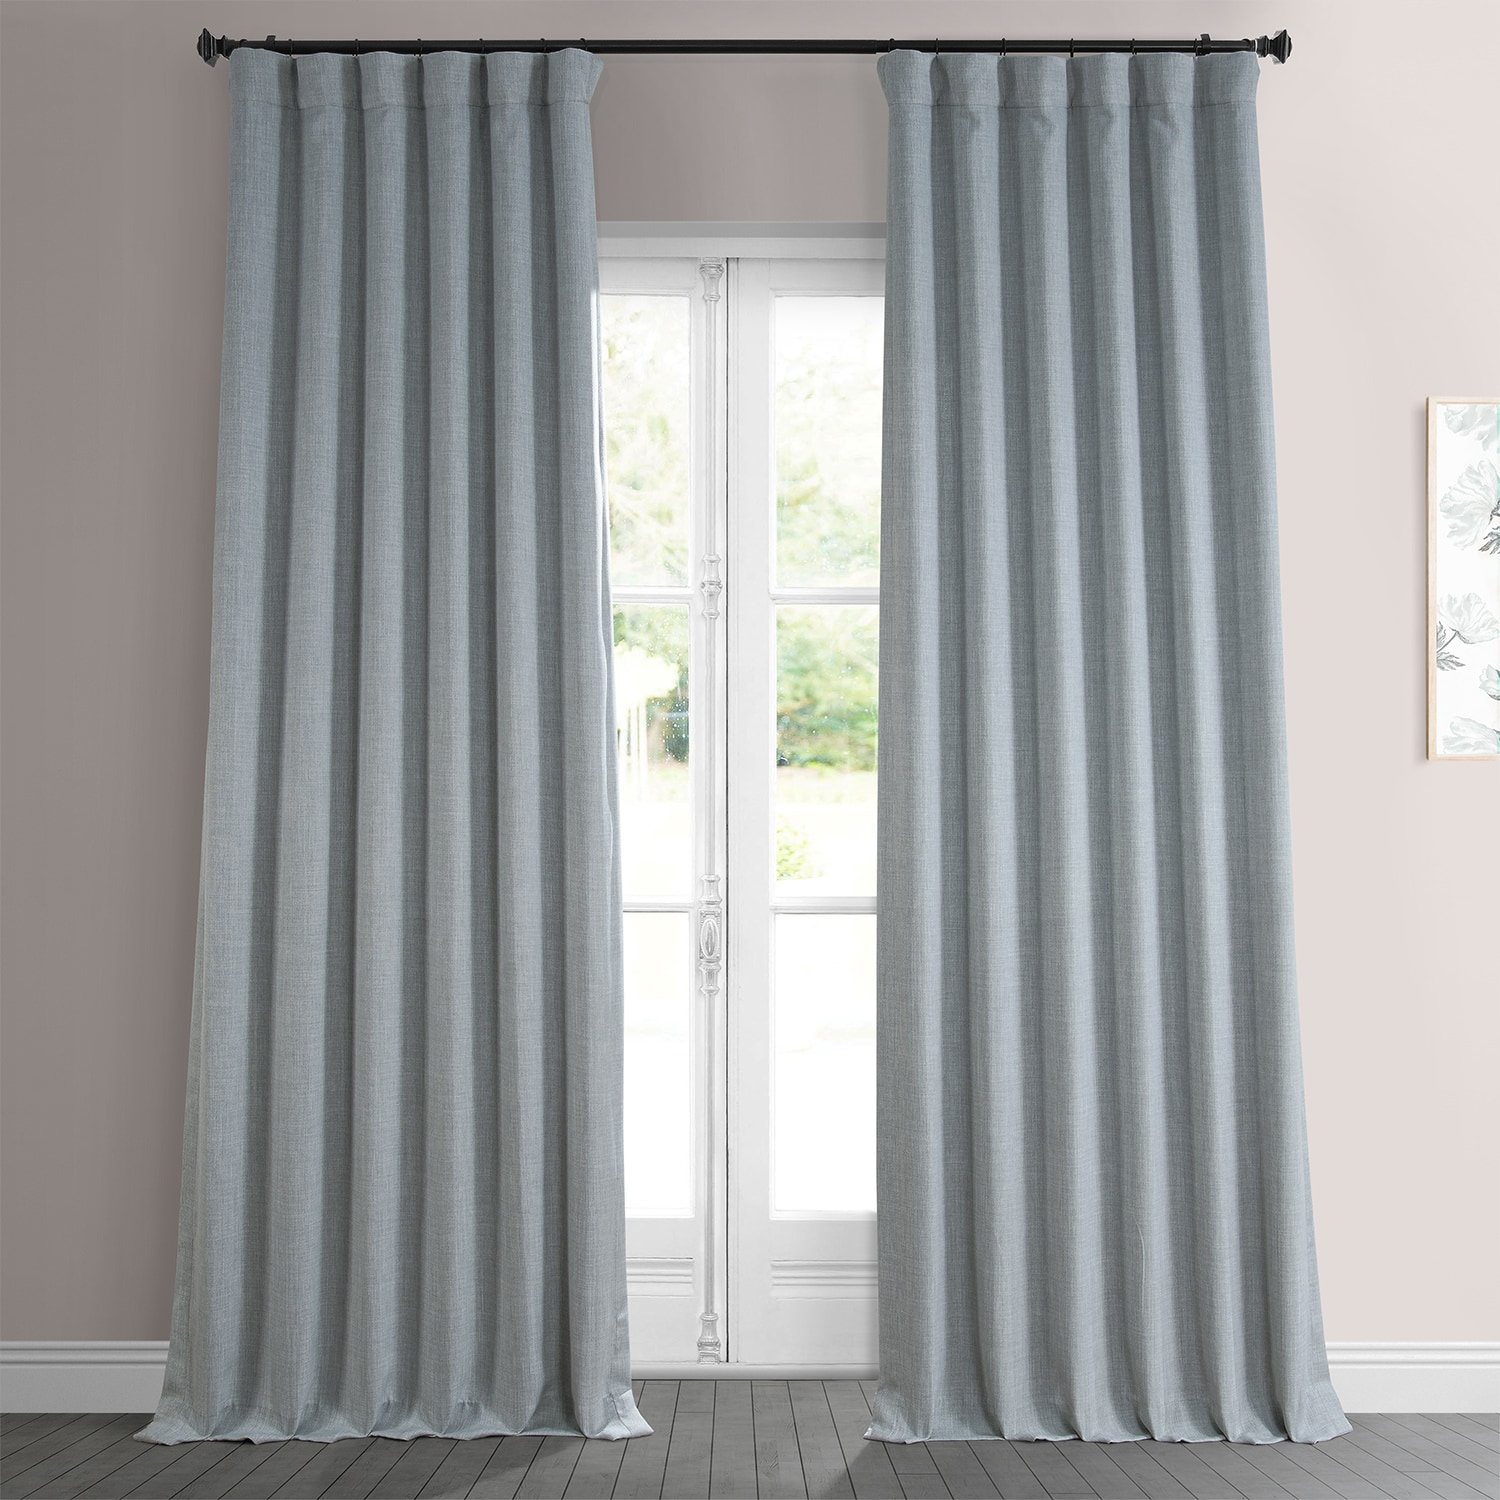 Heather Grey Faux Linen Blackout Room Darkening Curtain